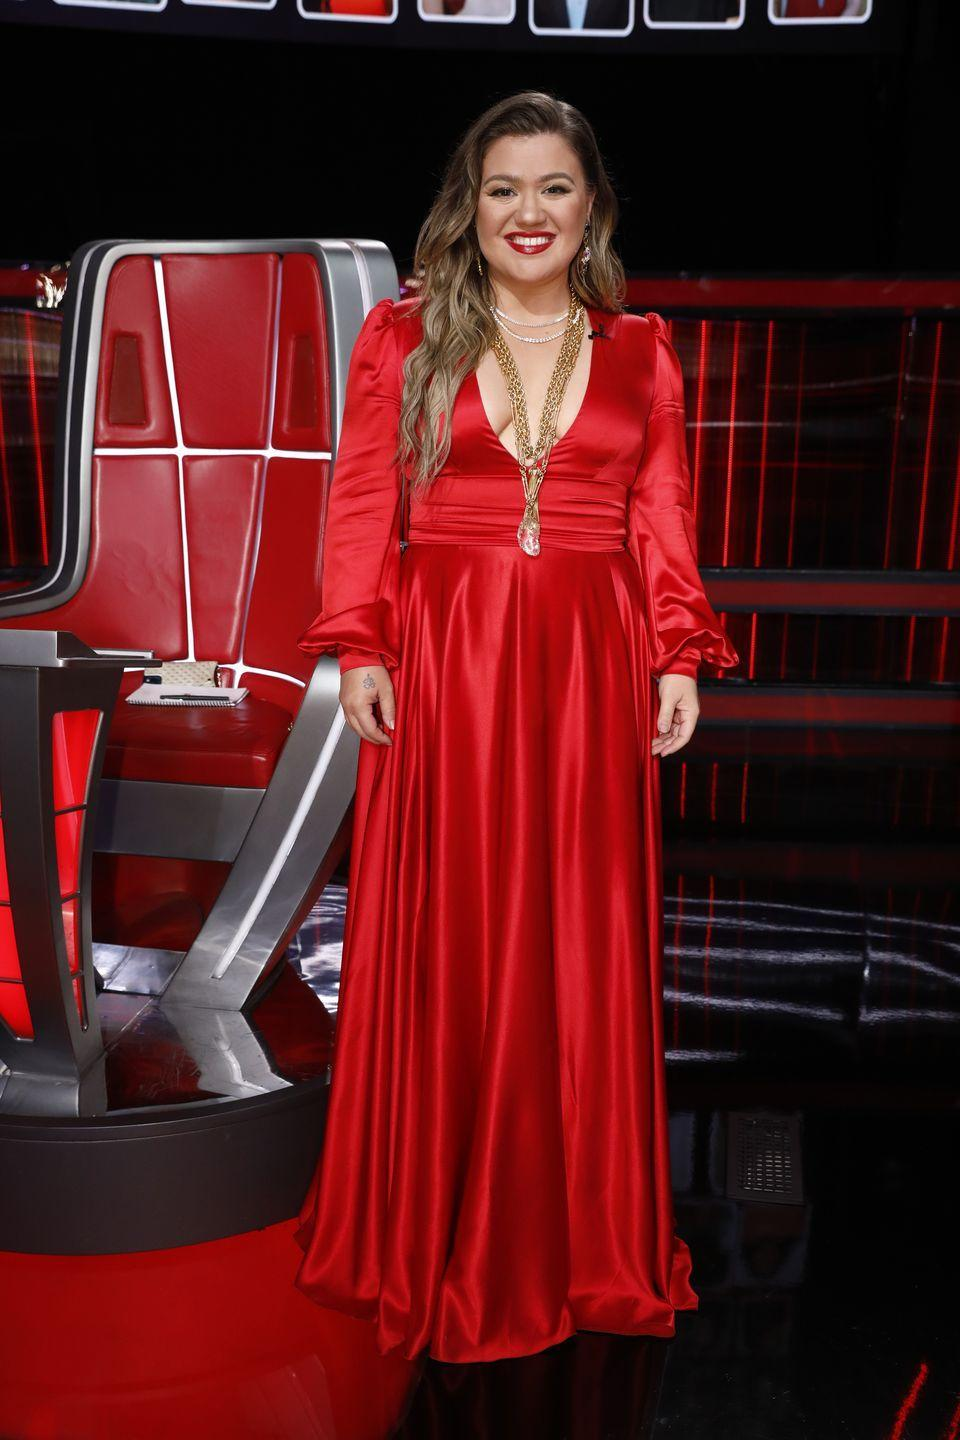 """<p>Kelly Clarkson has been open about her <a href=""""https://www.prevention.com/weight-loss/a29404524/kelly-clarkson-weight-loss/"""" rel=""""nofollow noopener"""" target=""""_blank"""" data-ylk=""""slk:37-pound weight loss"""" class=""""link rapid-noclick-resp"""">37-pound weight loss</a>, which she credits to following <a href=""""https://www.prevention.com/weight-loss/diets/a27505581/kelly-clarkson-plant-paradox-diet-weight-loss/"""" rel=""""nofollow noopener"""" target=""""_blank"""" data-ylk=""""slk:The Plant Paradox"""" class=""""link rapid-noclick-resp""""><em>The Plant Paradox</em></a> by Steven R. Gundry, which is pretty controversial. Clarkson says she started following the diet for medical reasons, though, and not specifically to lose weight. """"I did it for this autoimmune disease that I had and I had a thyroid issue, and now all my levels are back up. I'm not on medicine anymore because of this book,"""" she told <em><a href=""""https://www.today.com/video/kelly-clarkson-to-hoda-kotb-i-don-t-work-out-but-i-do-wine-instead-1251228739737"""" rel=""""nofollow noopener"""" target=""""_blank"""" data-ylk=""""slk:Today"""" class=""""link rapid-noclick-resp"""">Today</a>.</em></p>"""